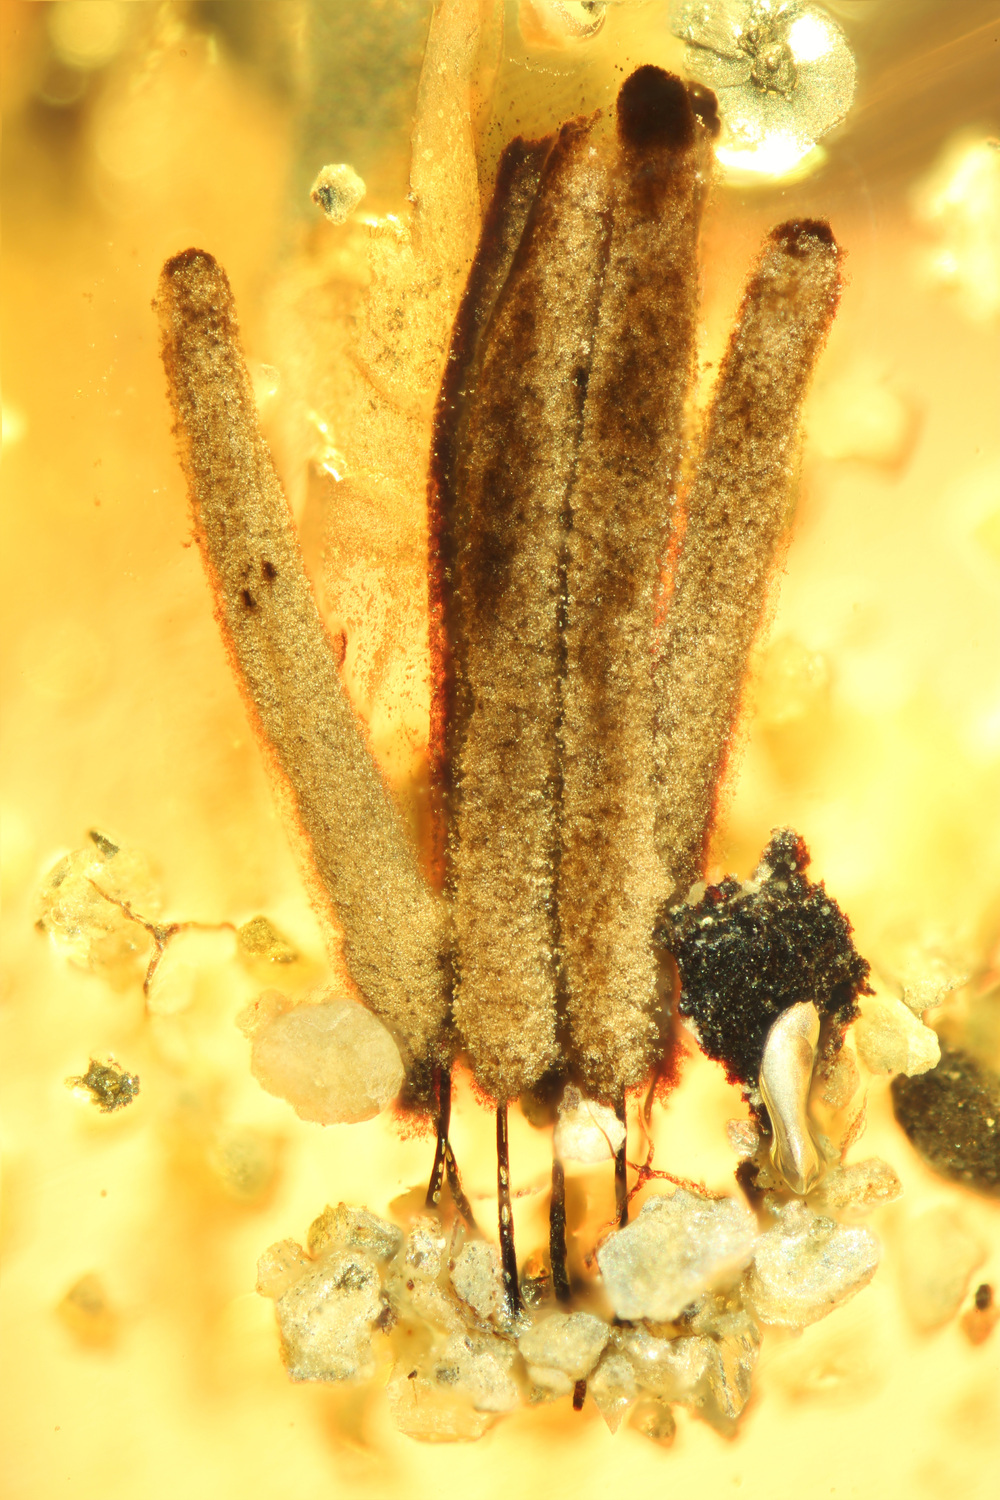 Group of several fruiting bodies of a slime mould (myxomycetes), around 2.5 millimetres long, in amber, which is about 100 million years old, from Myanmar: long-stalked fruiting bodies support the distribution of the spores, then as now.